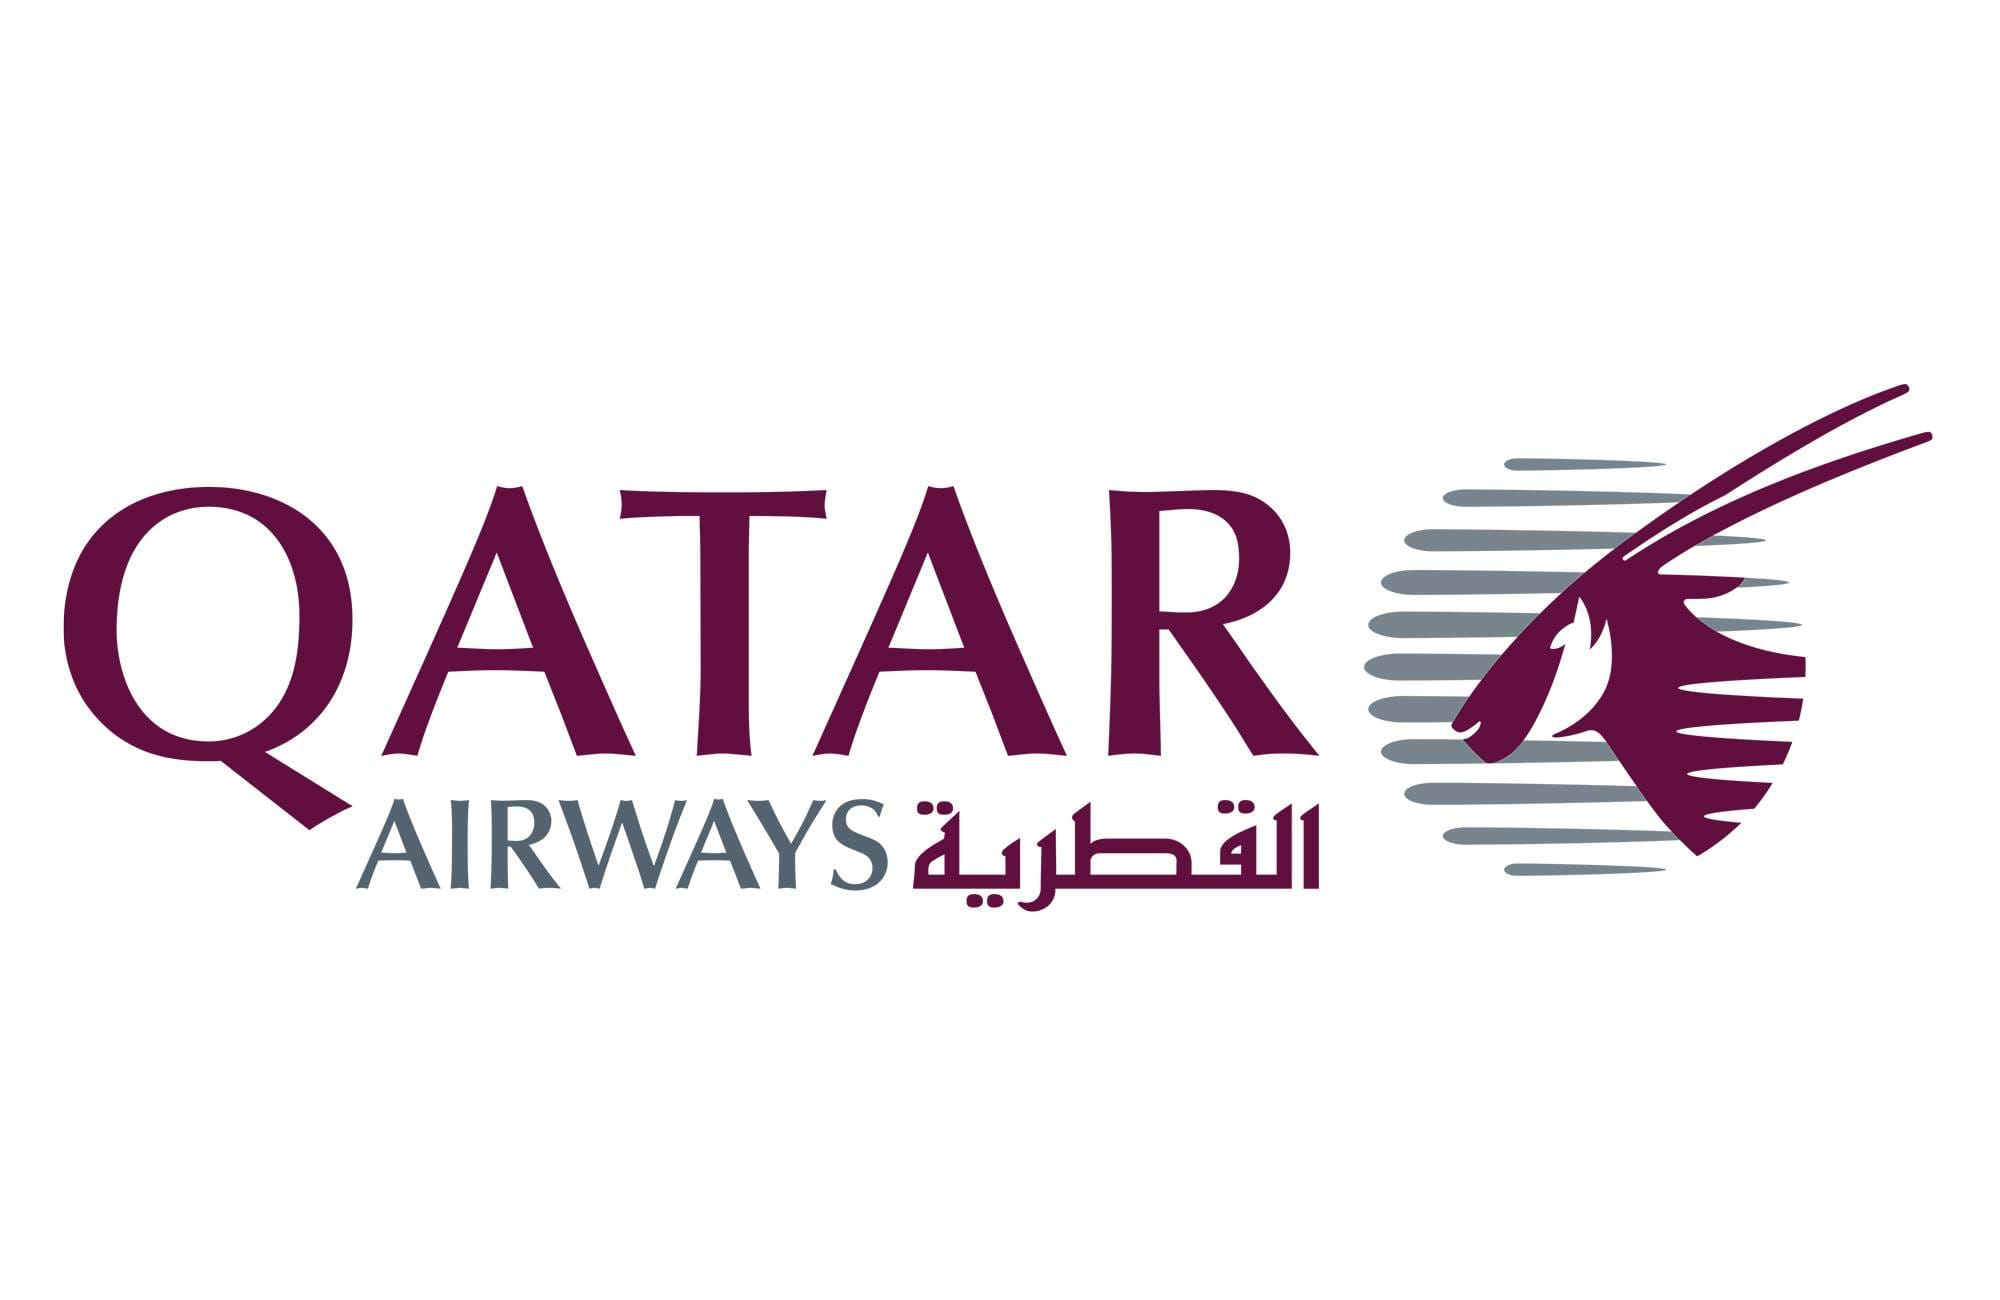 qatar airway logotyp